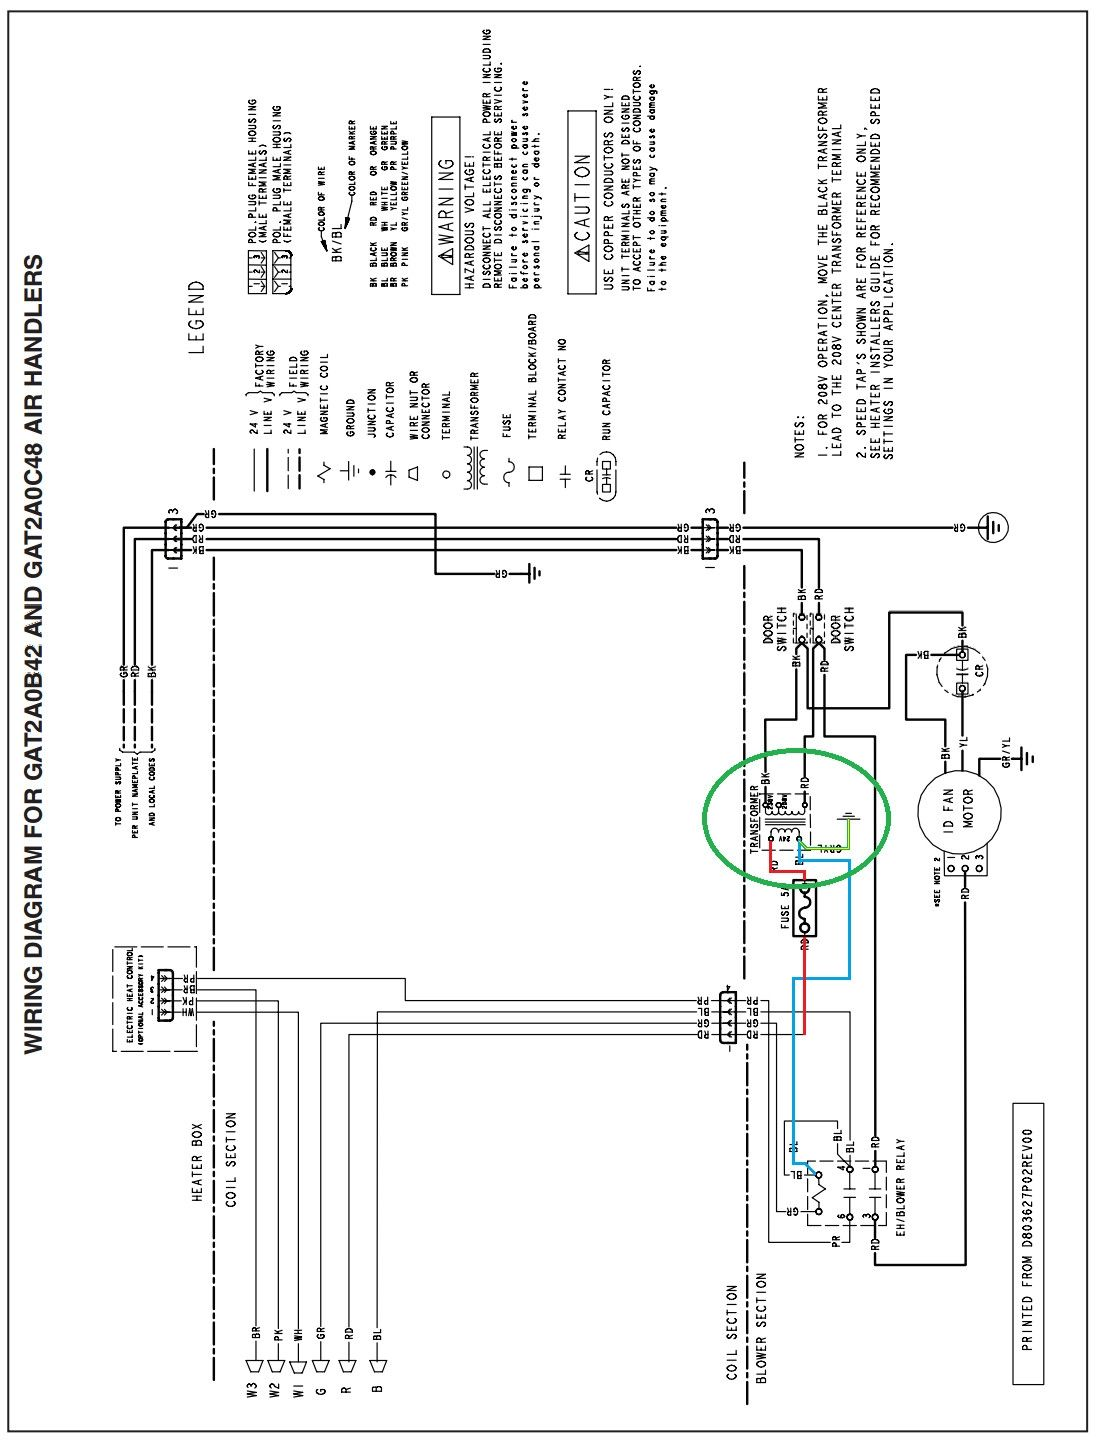 Enjoyable Trane Commercial Air Handler Wiring Diagram Wiring Diagram Data Wiring Digital Resources Funapmognl